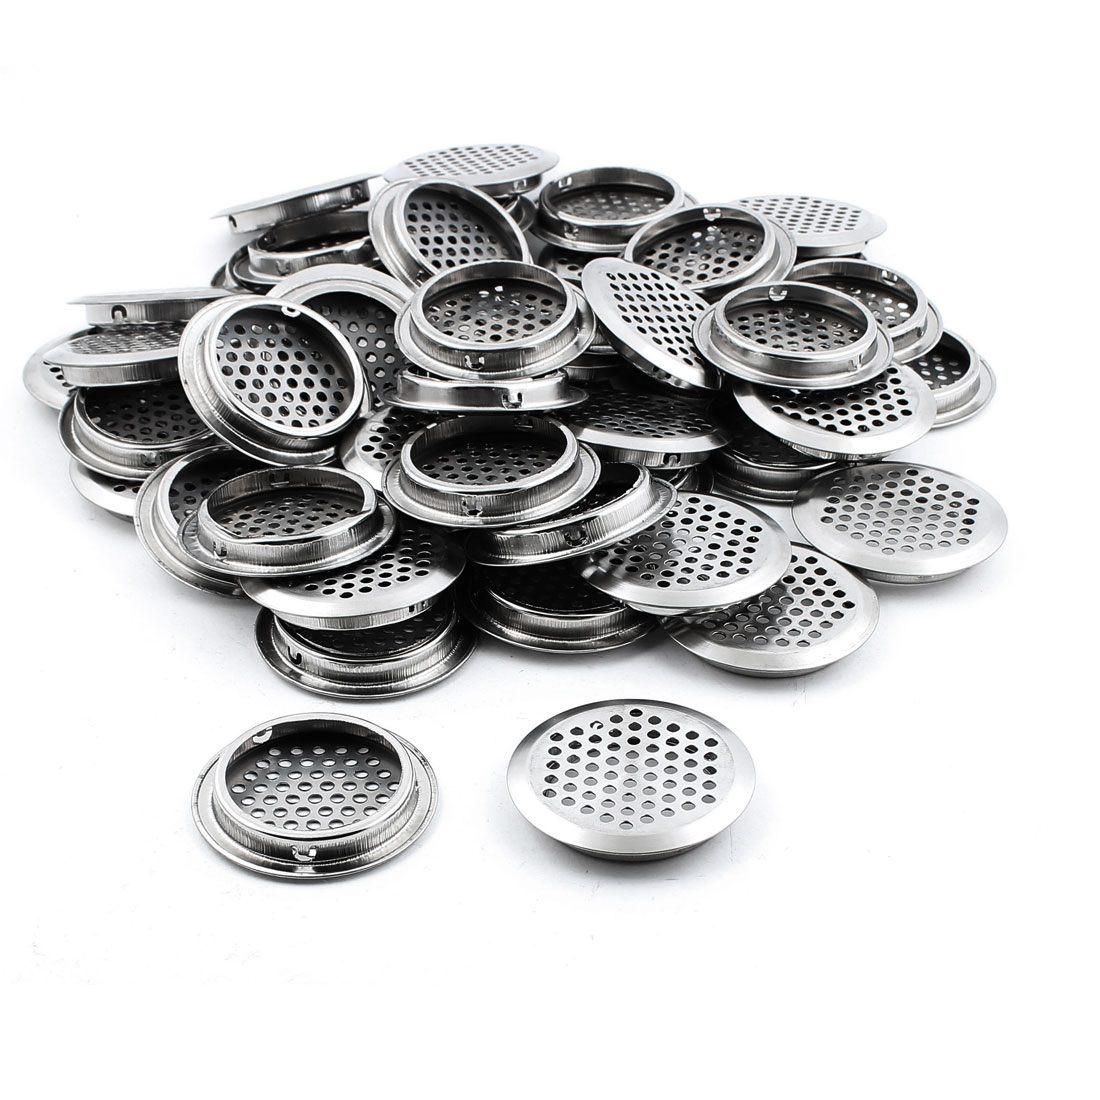 Furniture 53mm Bottom Dia Metal Round Blowholes Air Vent Cover 50PCS